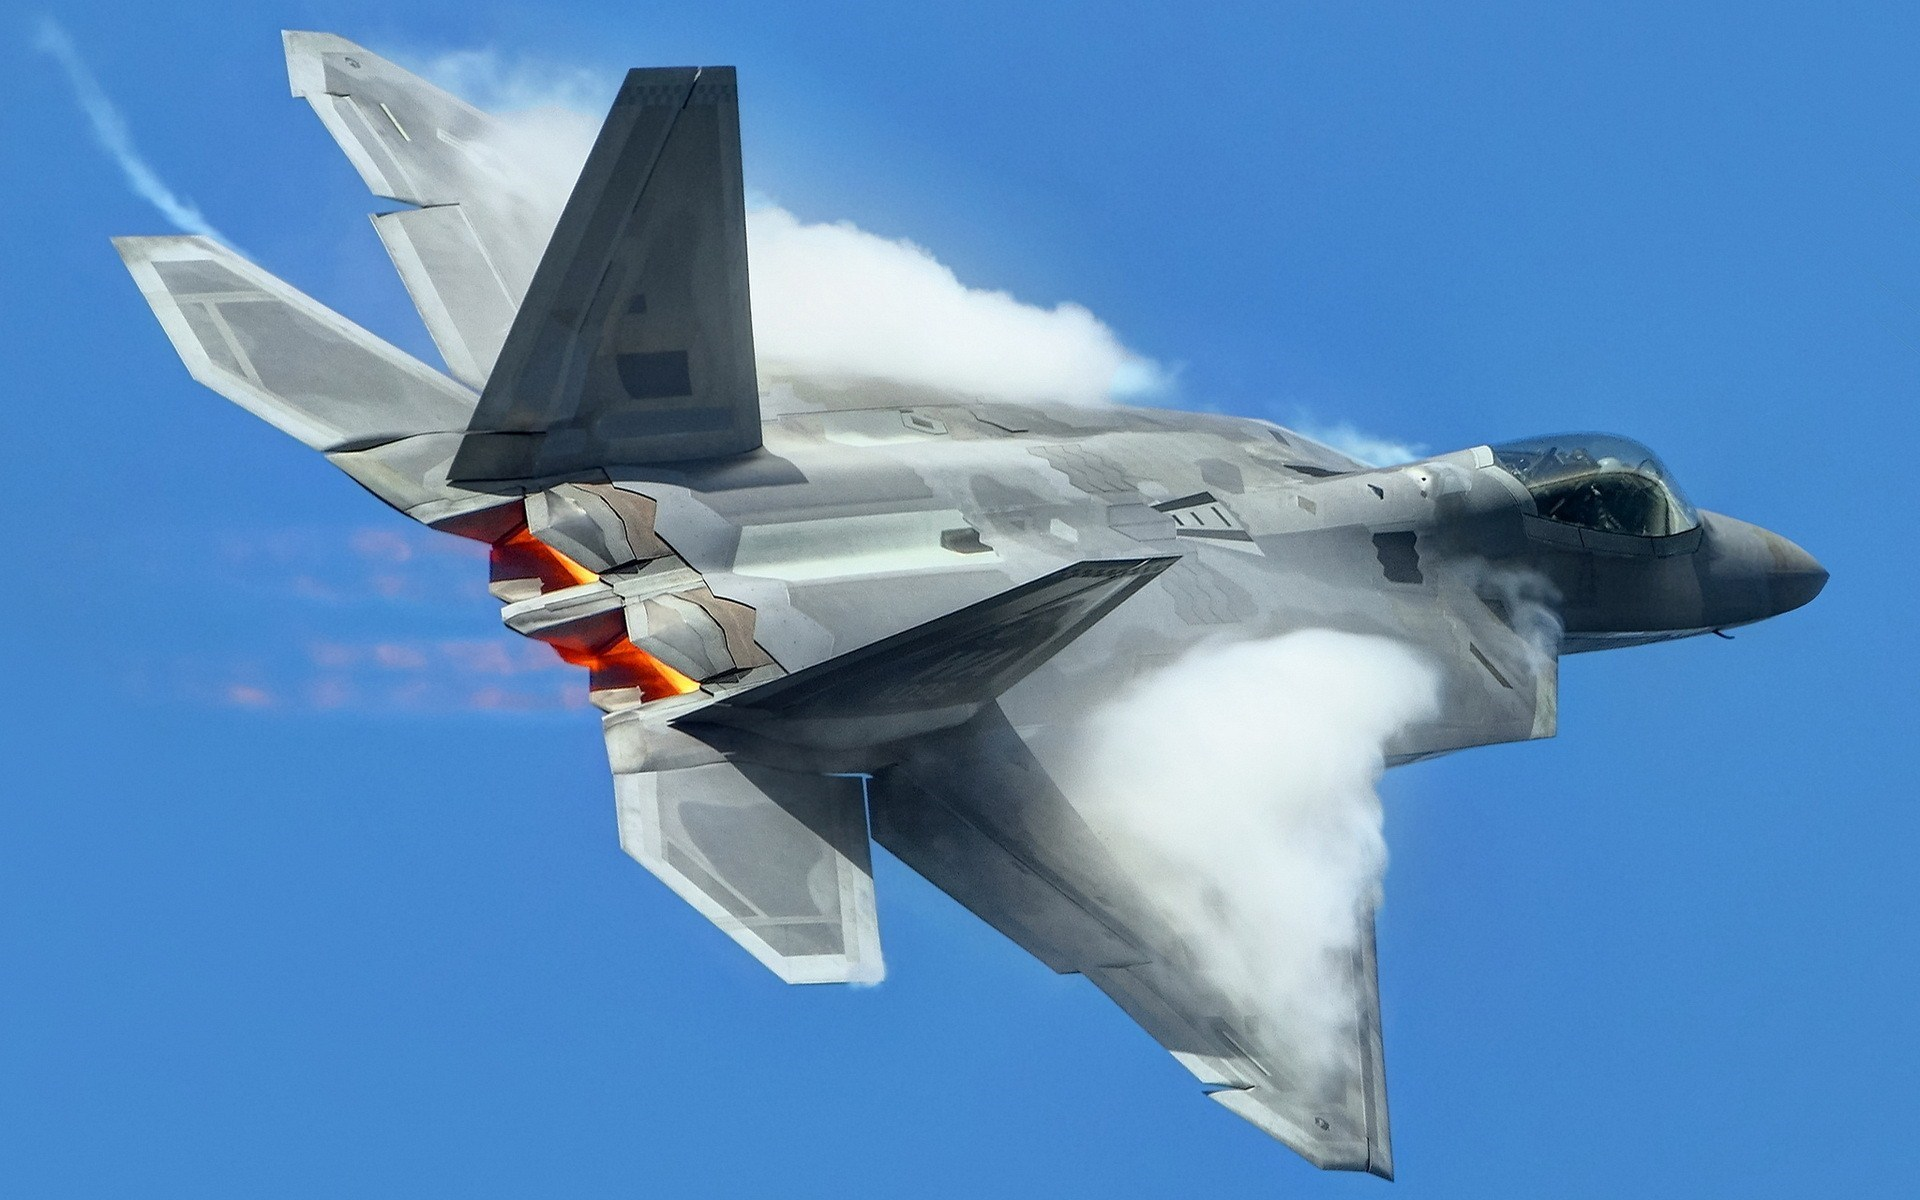 Lockheed Martin F-22 Raptor Fighter Aircraft